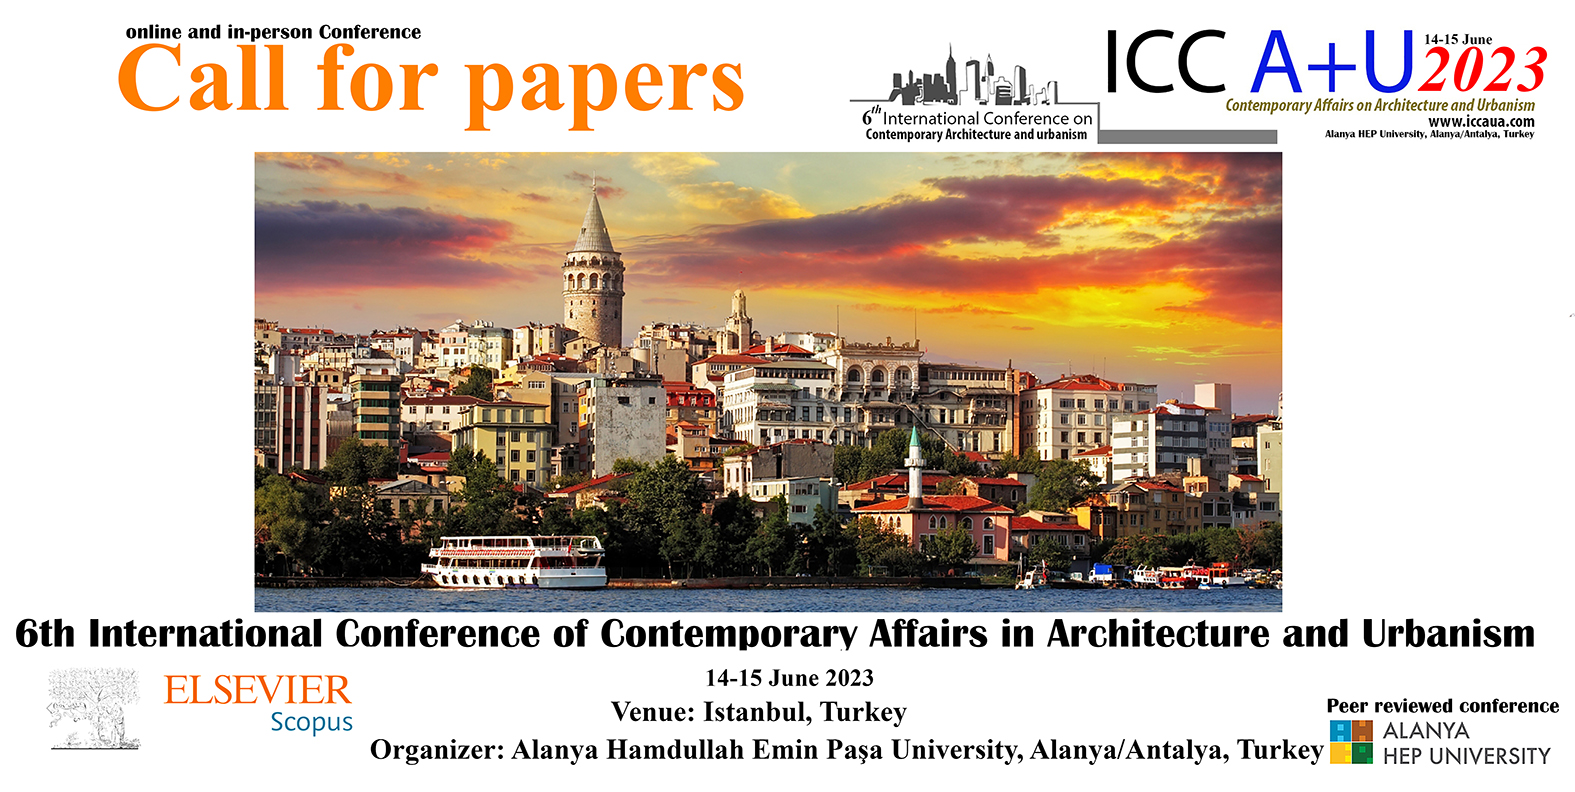 3rd International Conference of Contemporary Affairs on Architecture and Urbanism 2020 ICCAUA ALANYA HEP UNIVERSITY